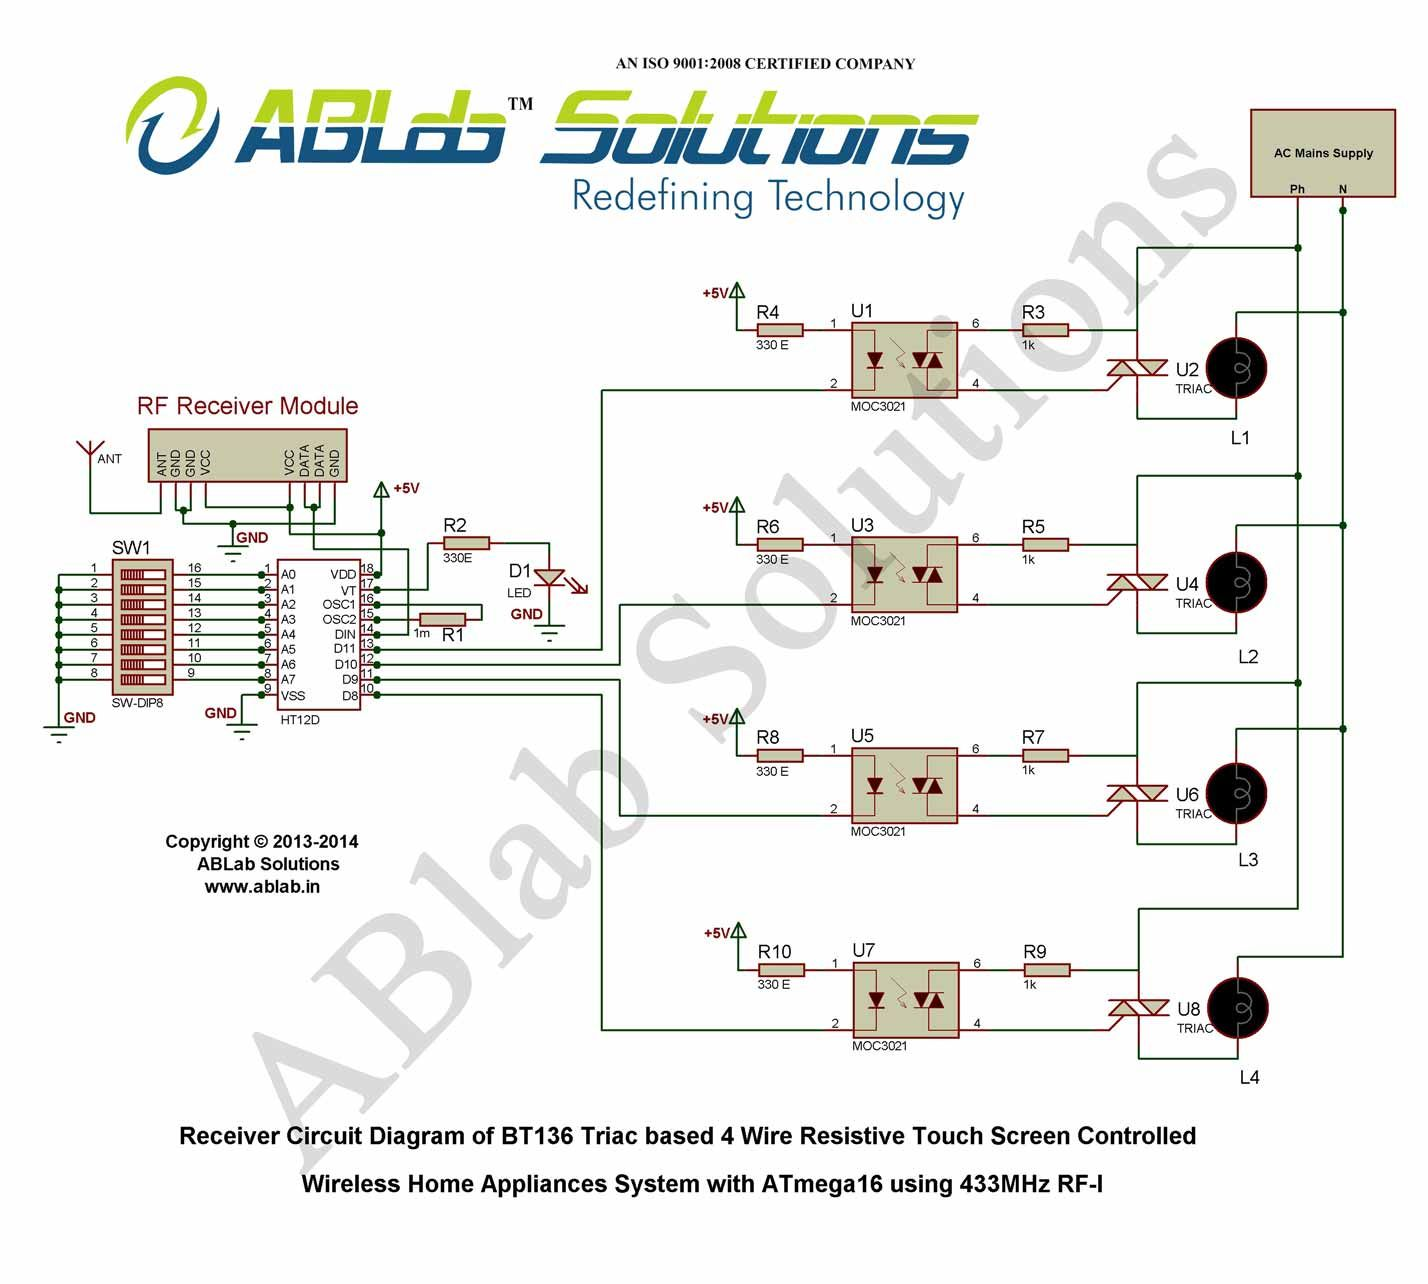 Bt136 Triac Based 4 Wire Resistive Touch Screen Controlled Wireless Wiring Diagram For Household Appliances Home System With Avr Atmega16 Microcontroller Using 433mhz Rf I Receiver